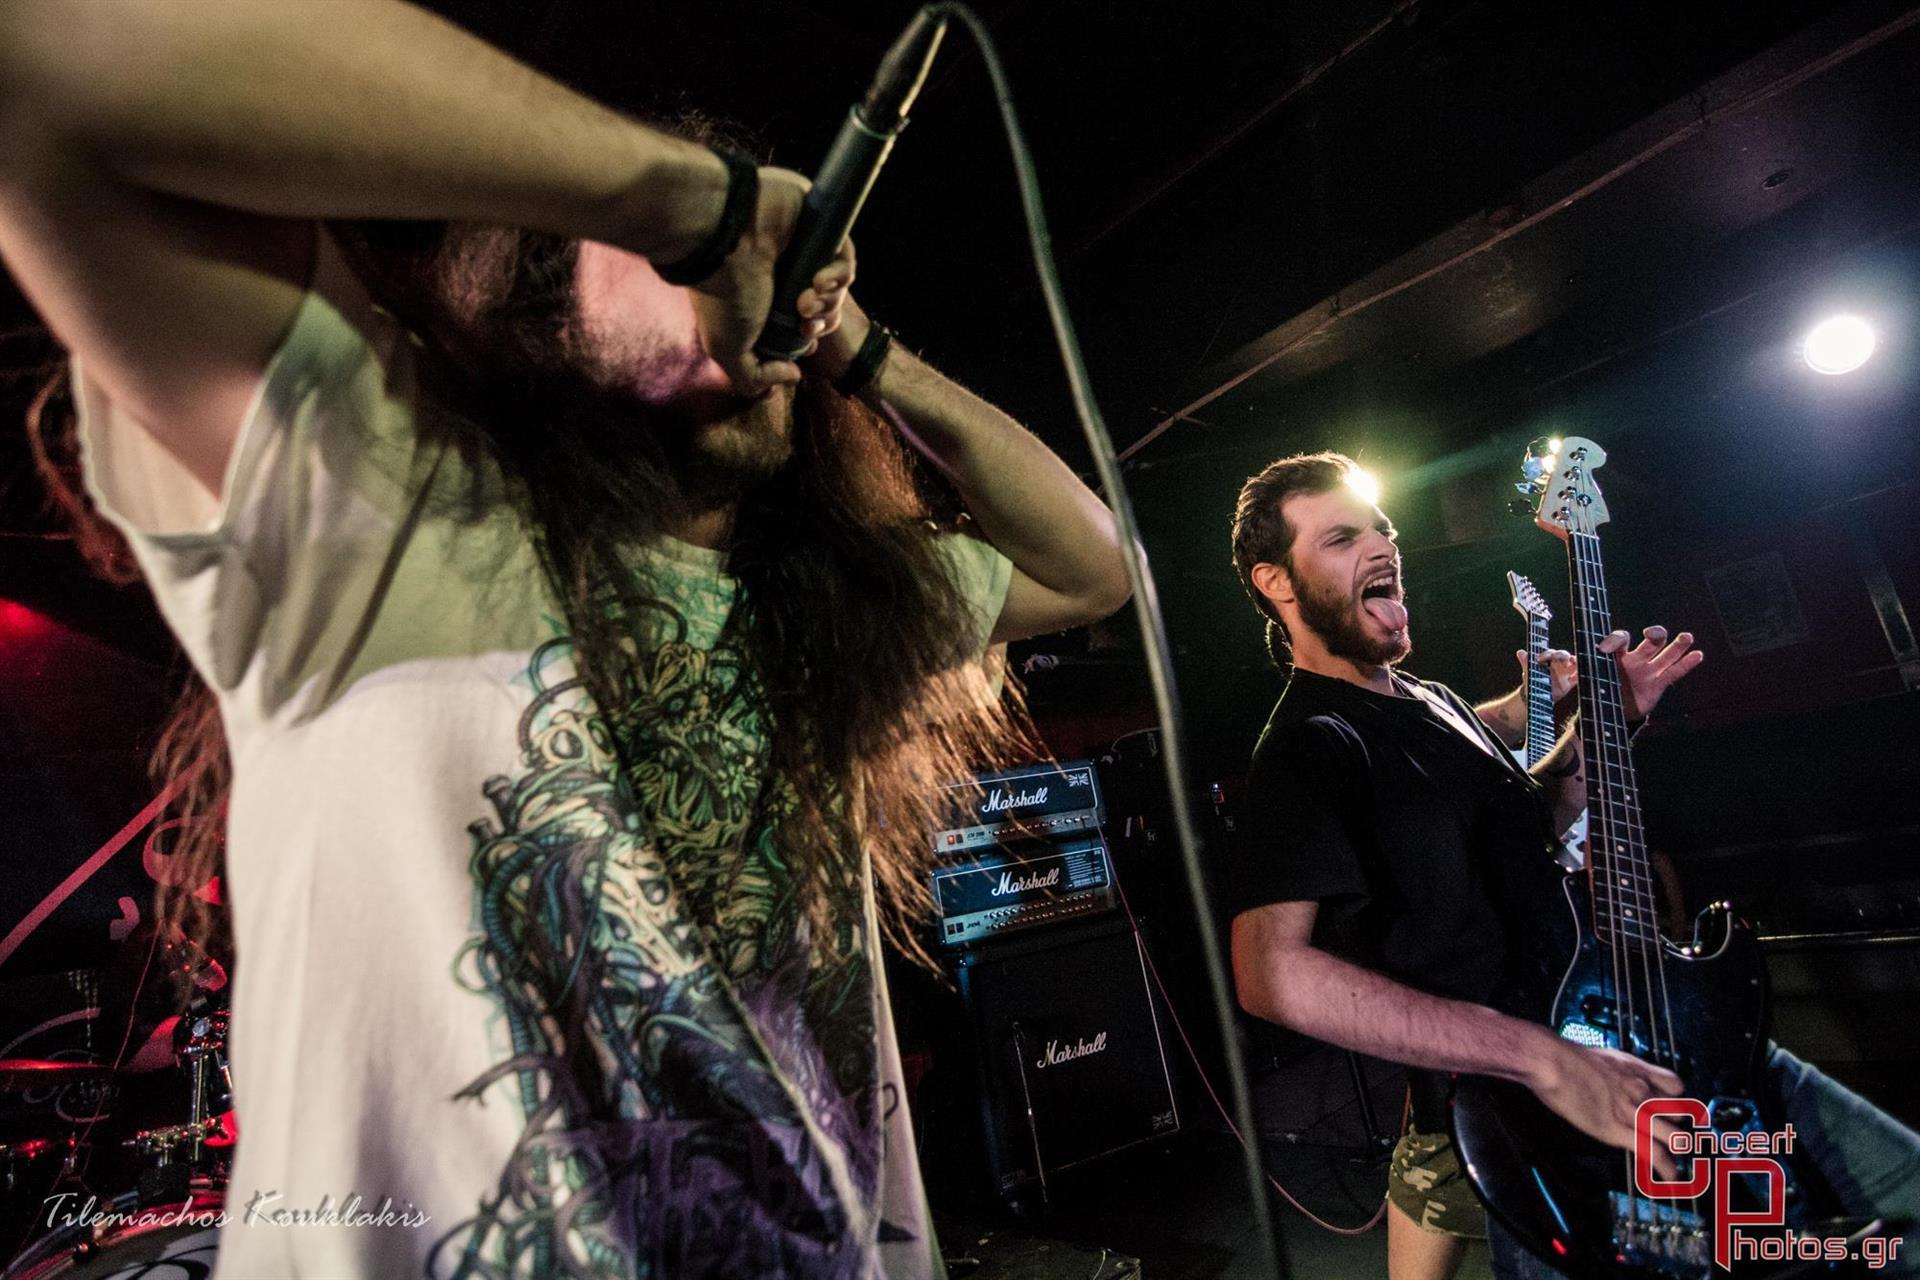 Battle Of The Bands Athens - Leg 4-test photographer:  - Battle Of The Bands-20150209-000719